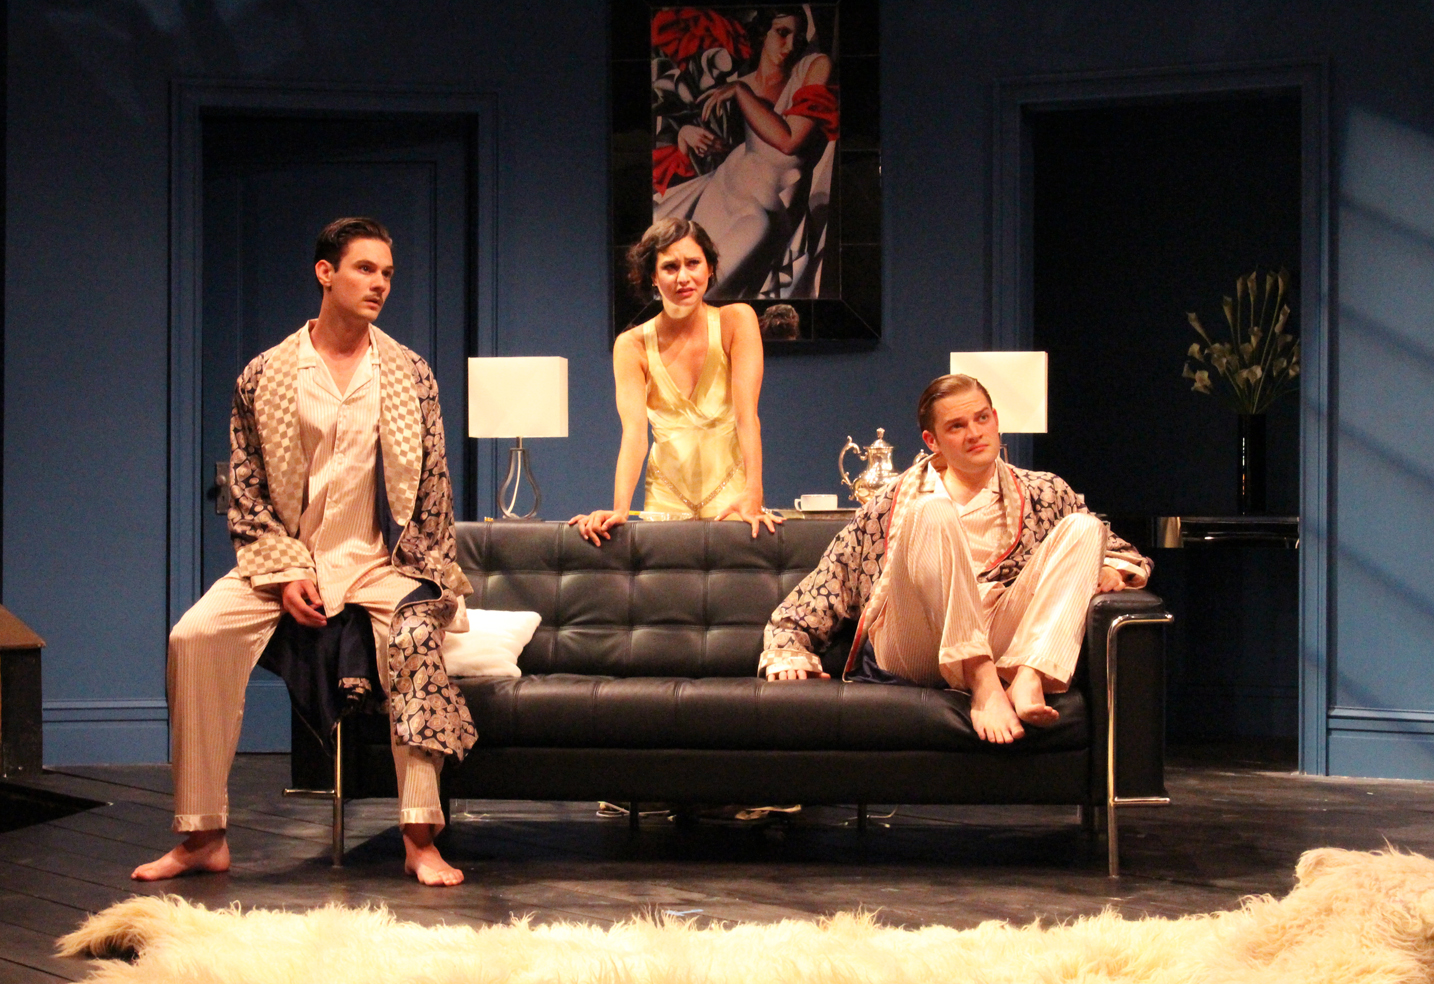 THE THREESOME LISTENING TO ERNEST, ACT III